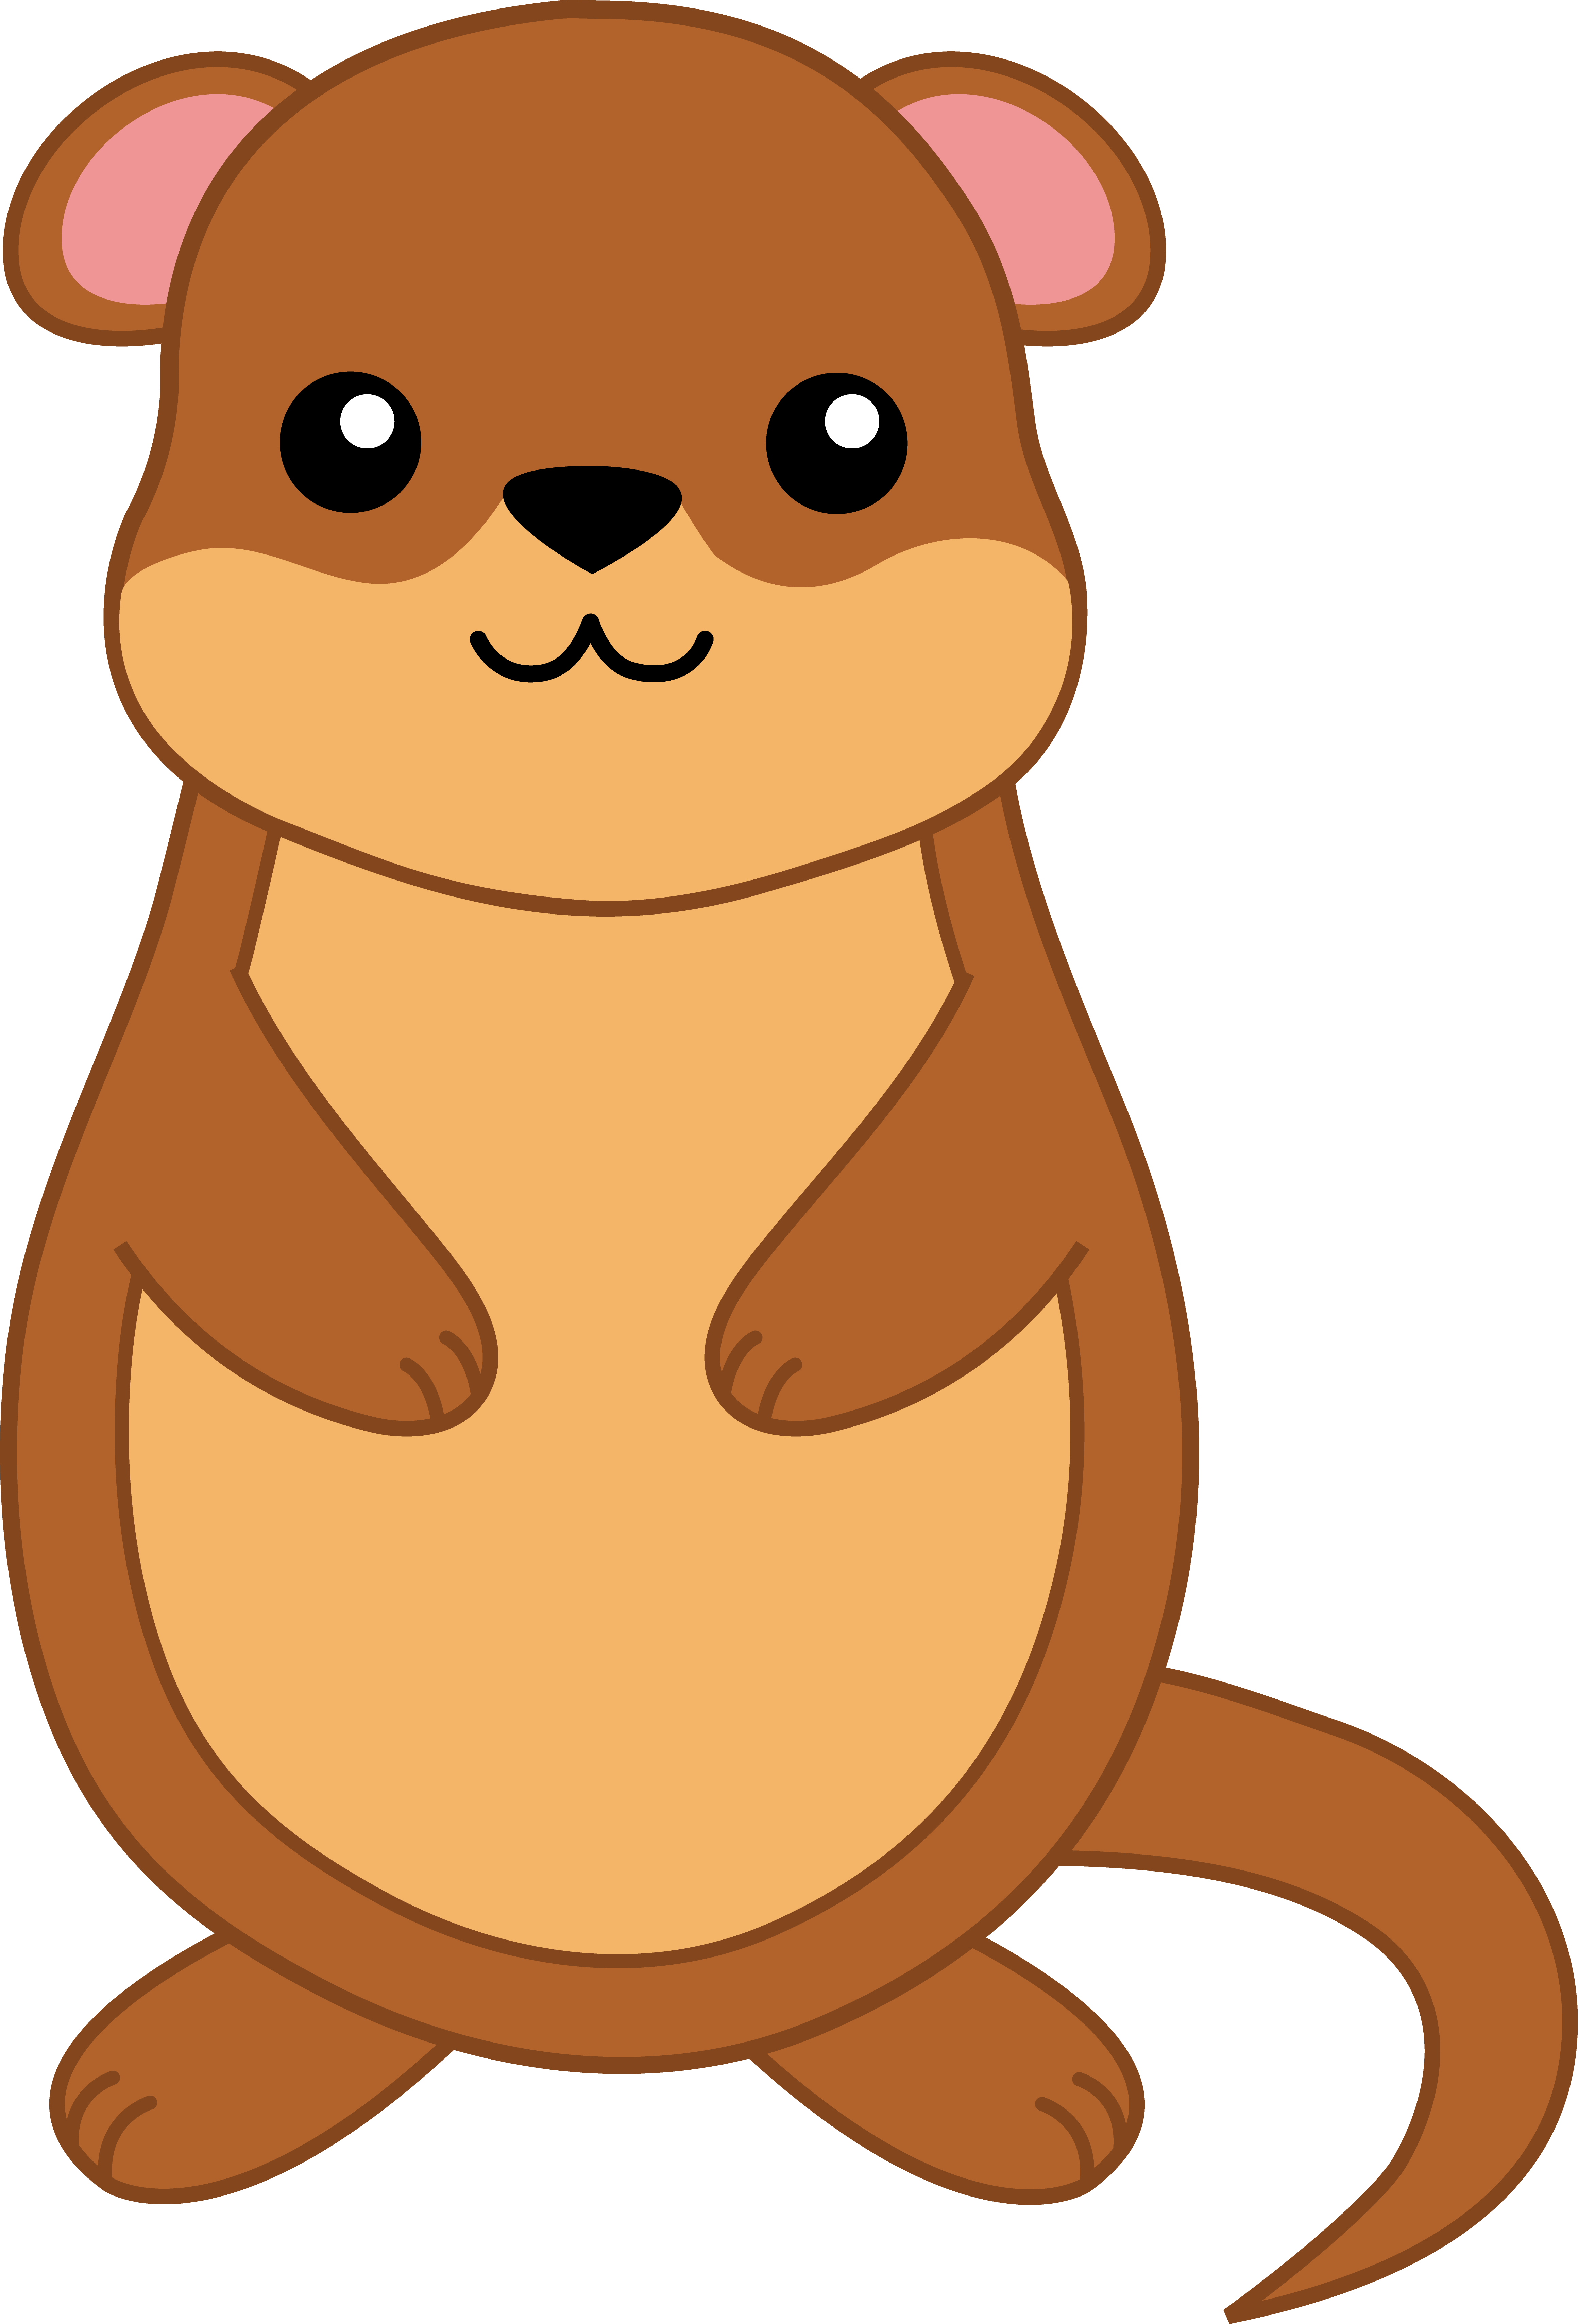 Groundhog clipart sea otter. Free day at getdrawings